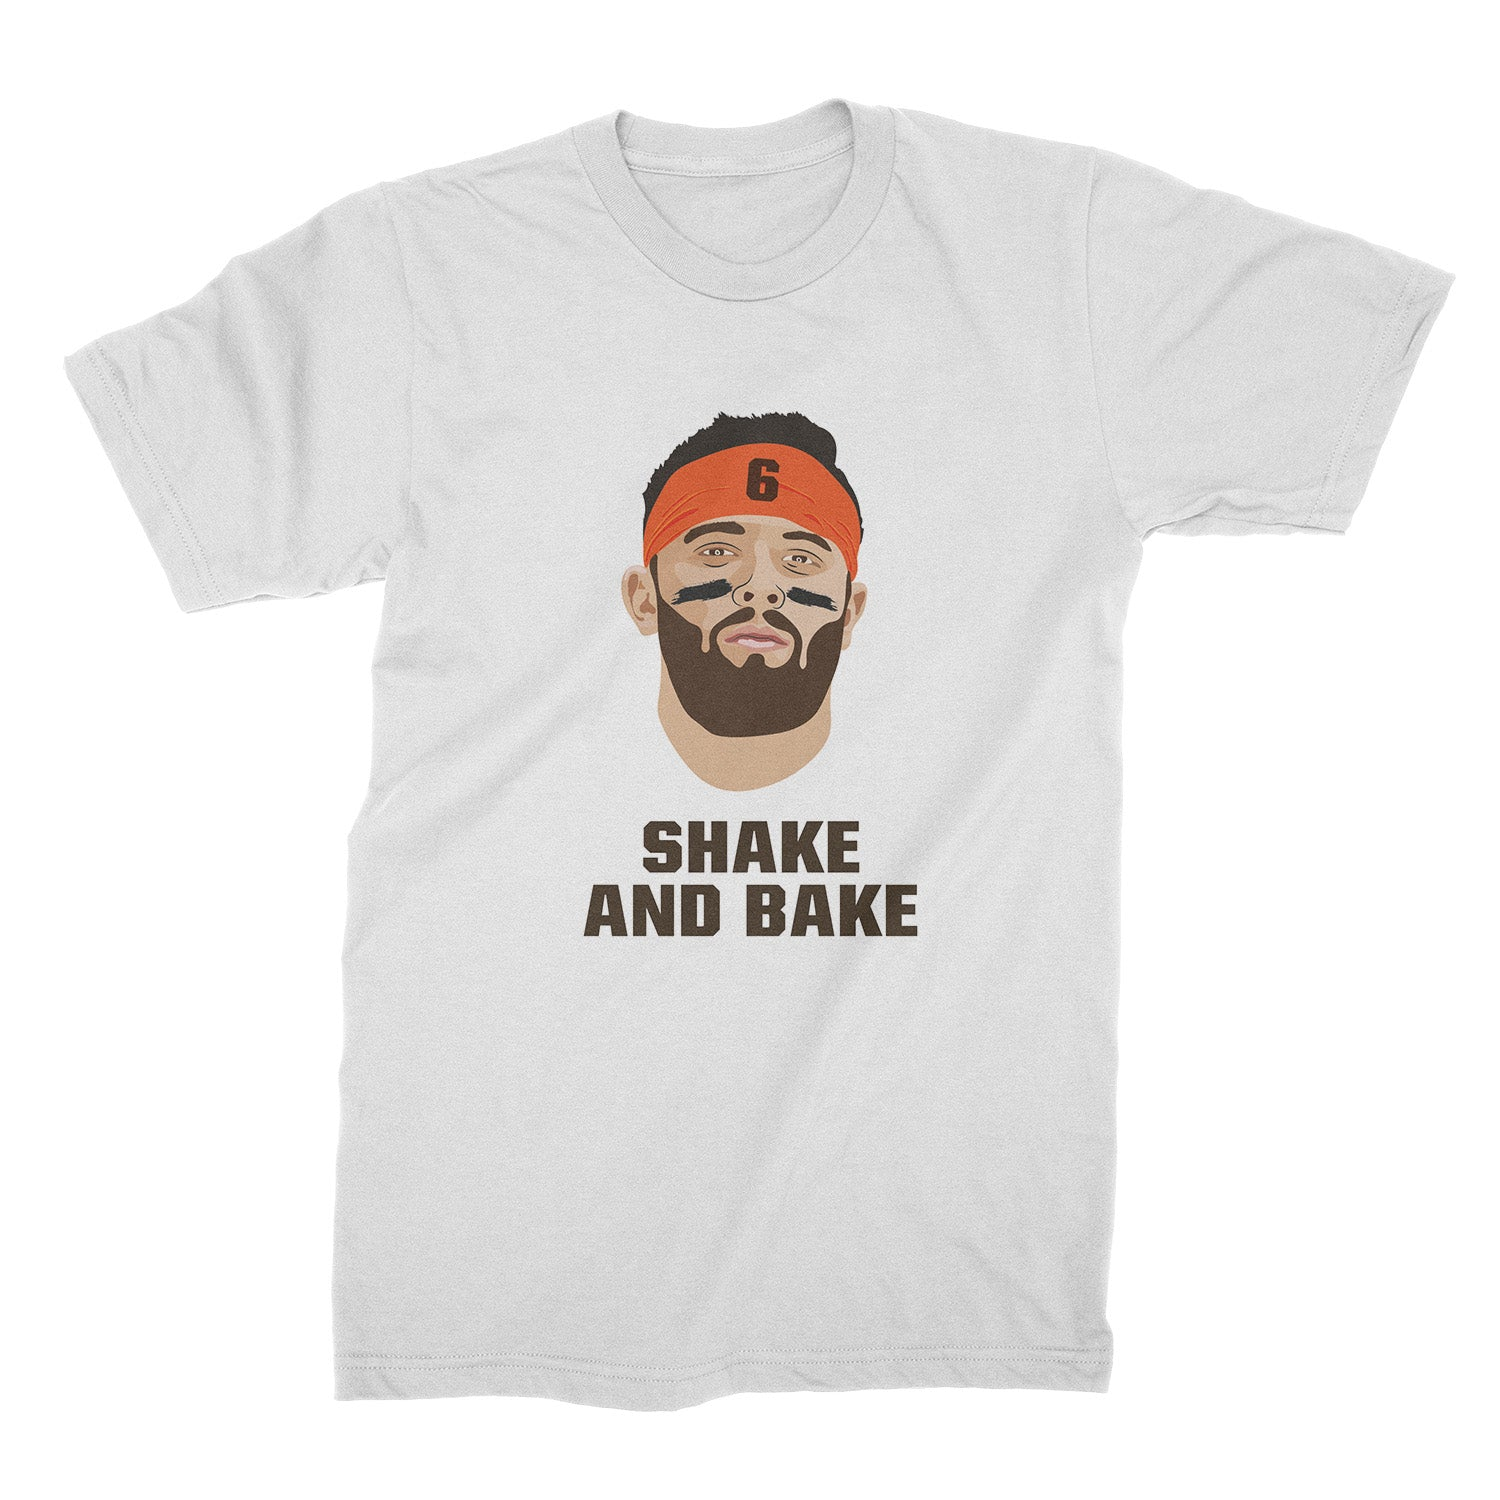 5ad1ceb2 Baker Mayfield Shirt Browns Tshirt Baker Mayfield Shake and Bake ...